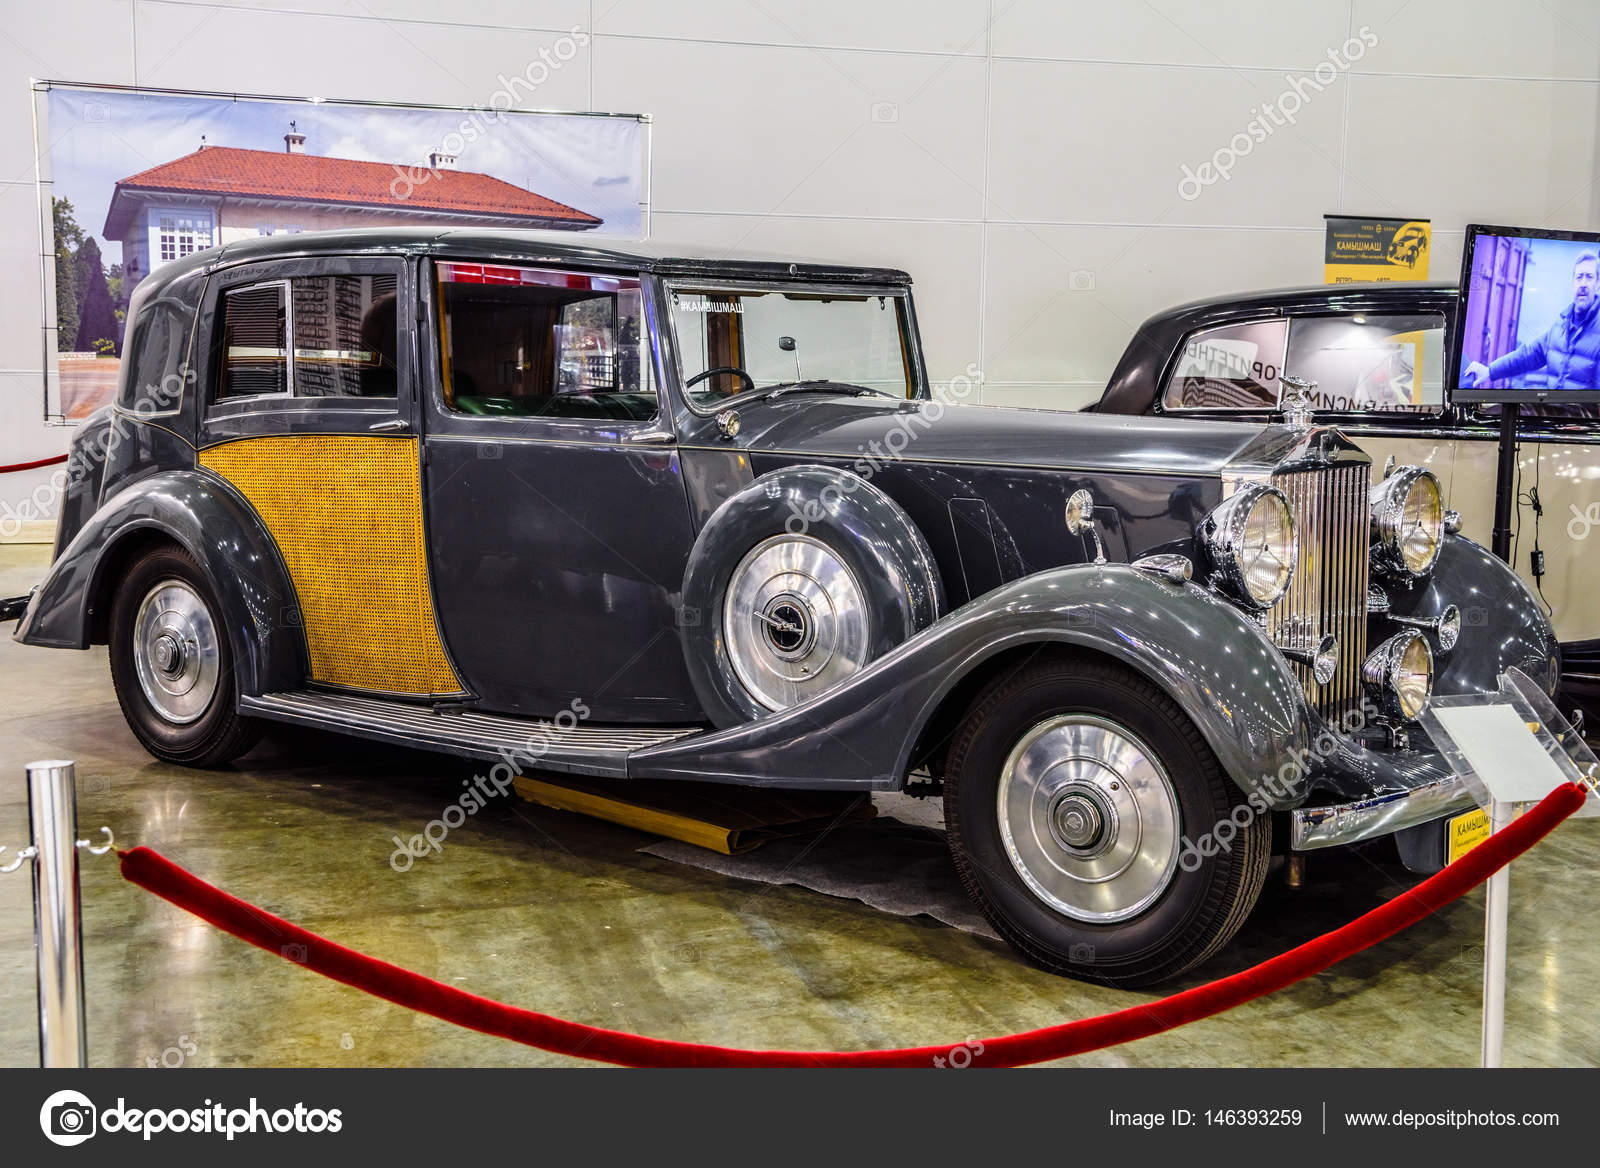 Moscow Aug 2016 Rolls Royce Phantom Iii 1937 Presented At Mias Moscow International Automobile Salon On August 20 2016 In Moscow Russia Stock Editorial Photo C Eagle2308 146393259